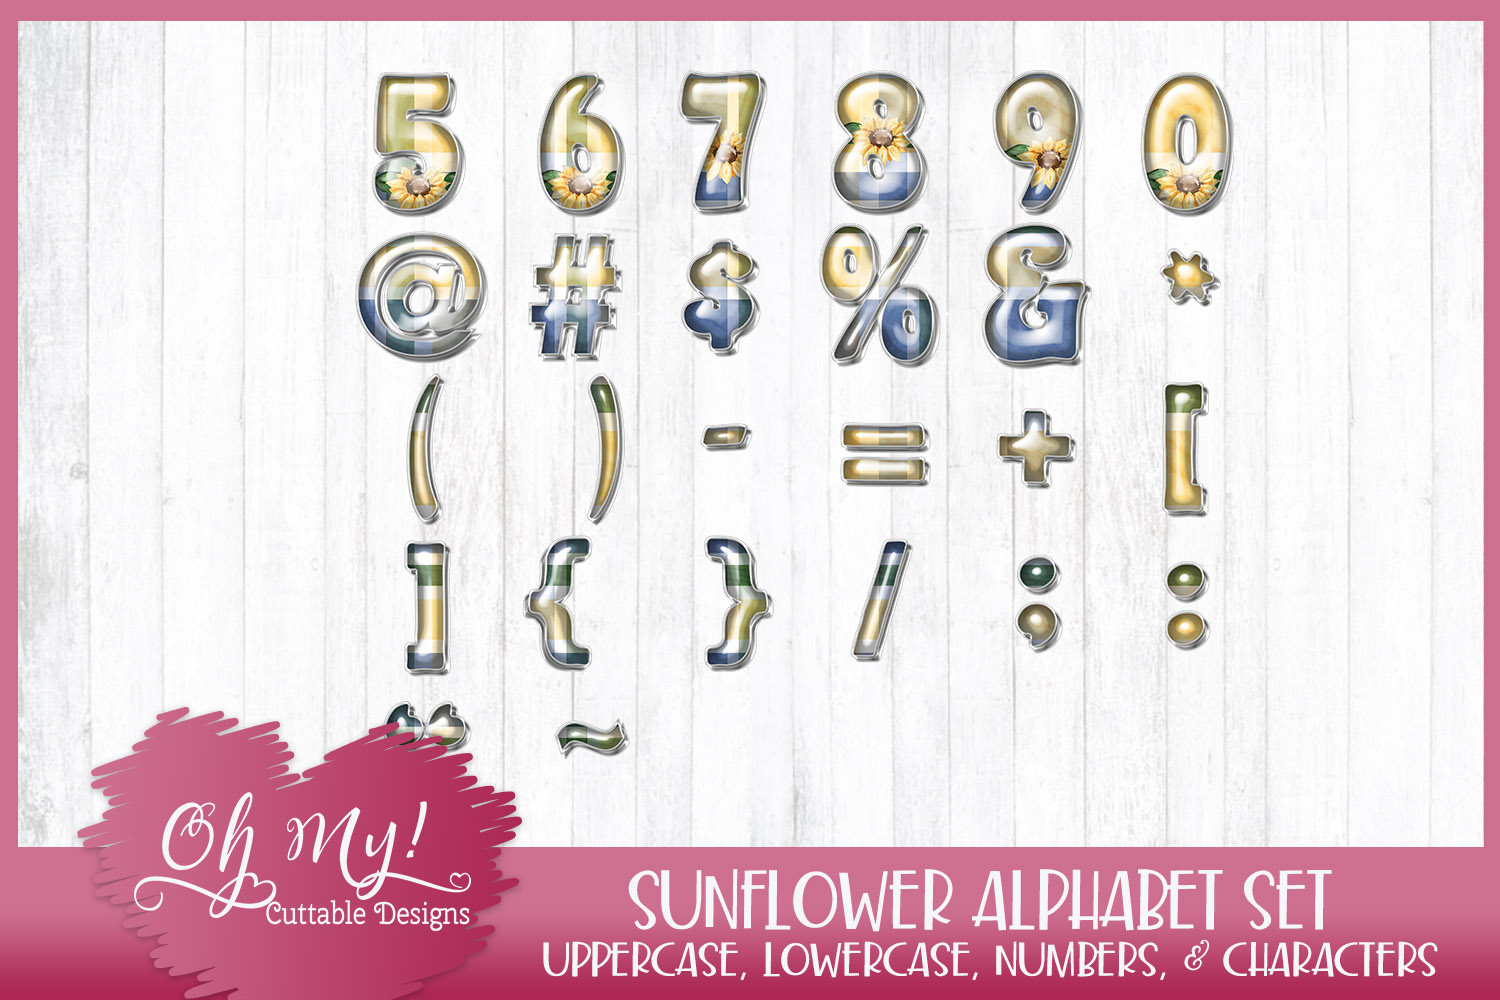 Sunflower Alphabet Bundle Clipart Graphics Word Art example image 4